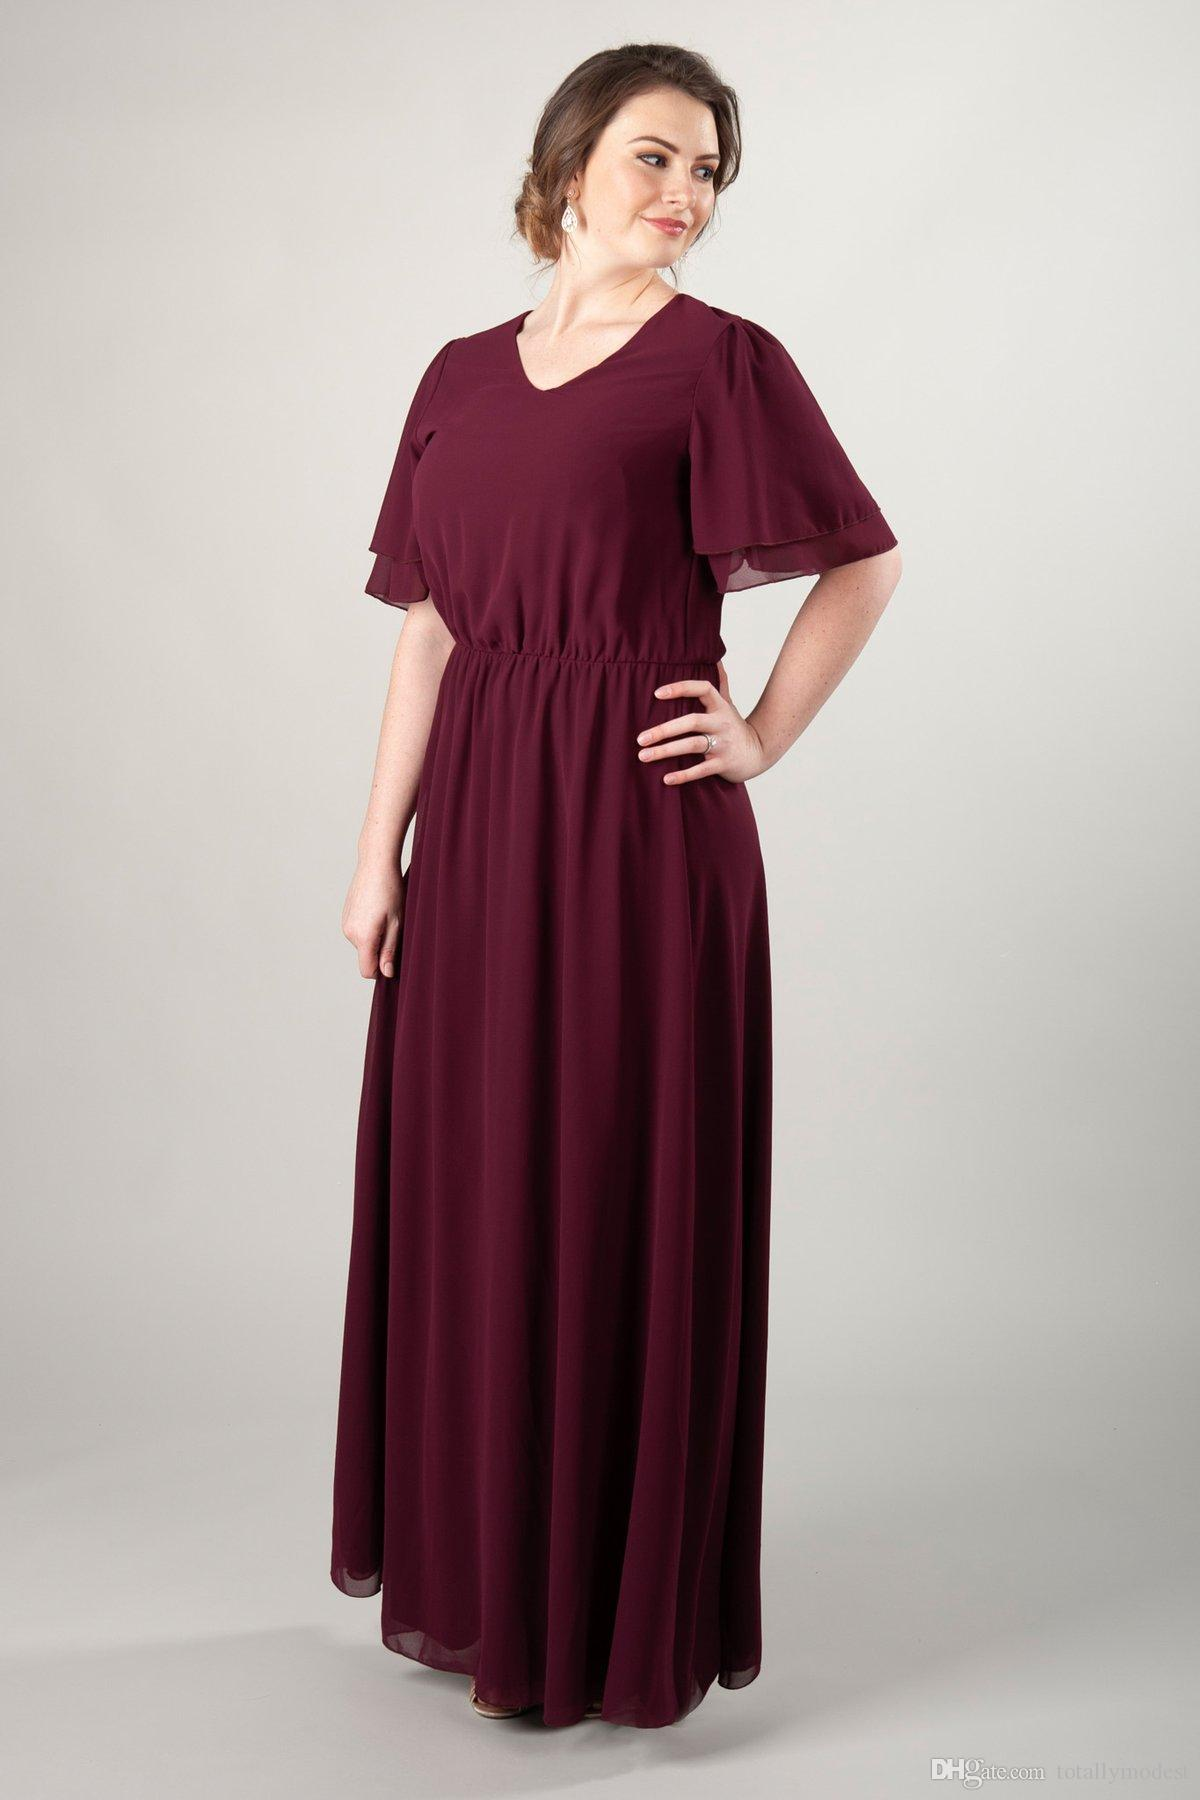 9984878e241 2019 Dark Red Chiffon Plus Size Long Modest Bridesmaid Dresses With Flutter  Sleeves A Line Floor Length Beach Wedding Party Dress Australia 2019 From  ...